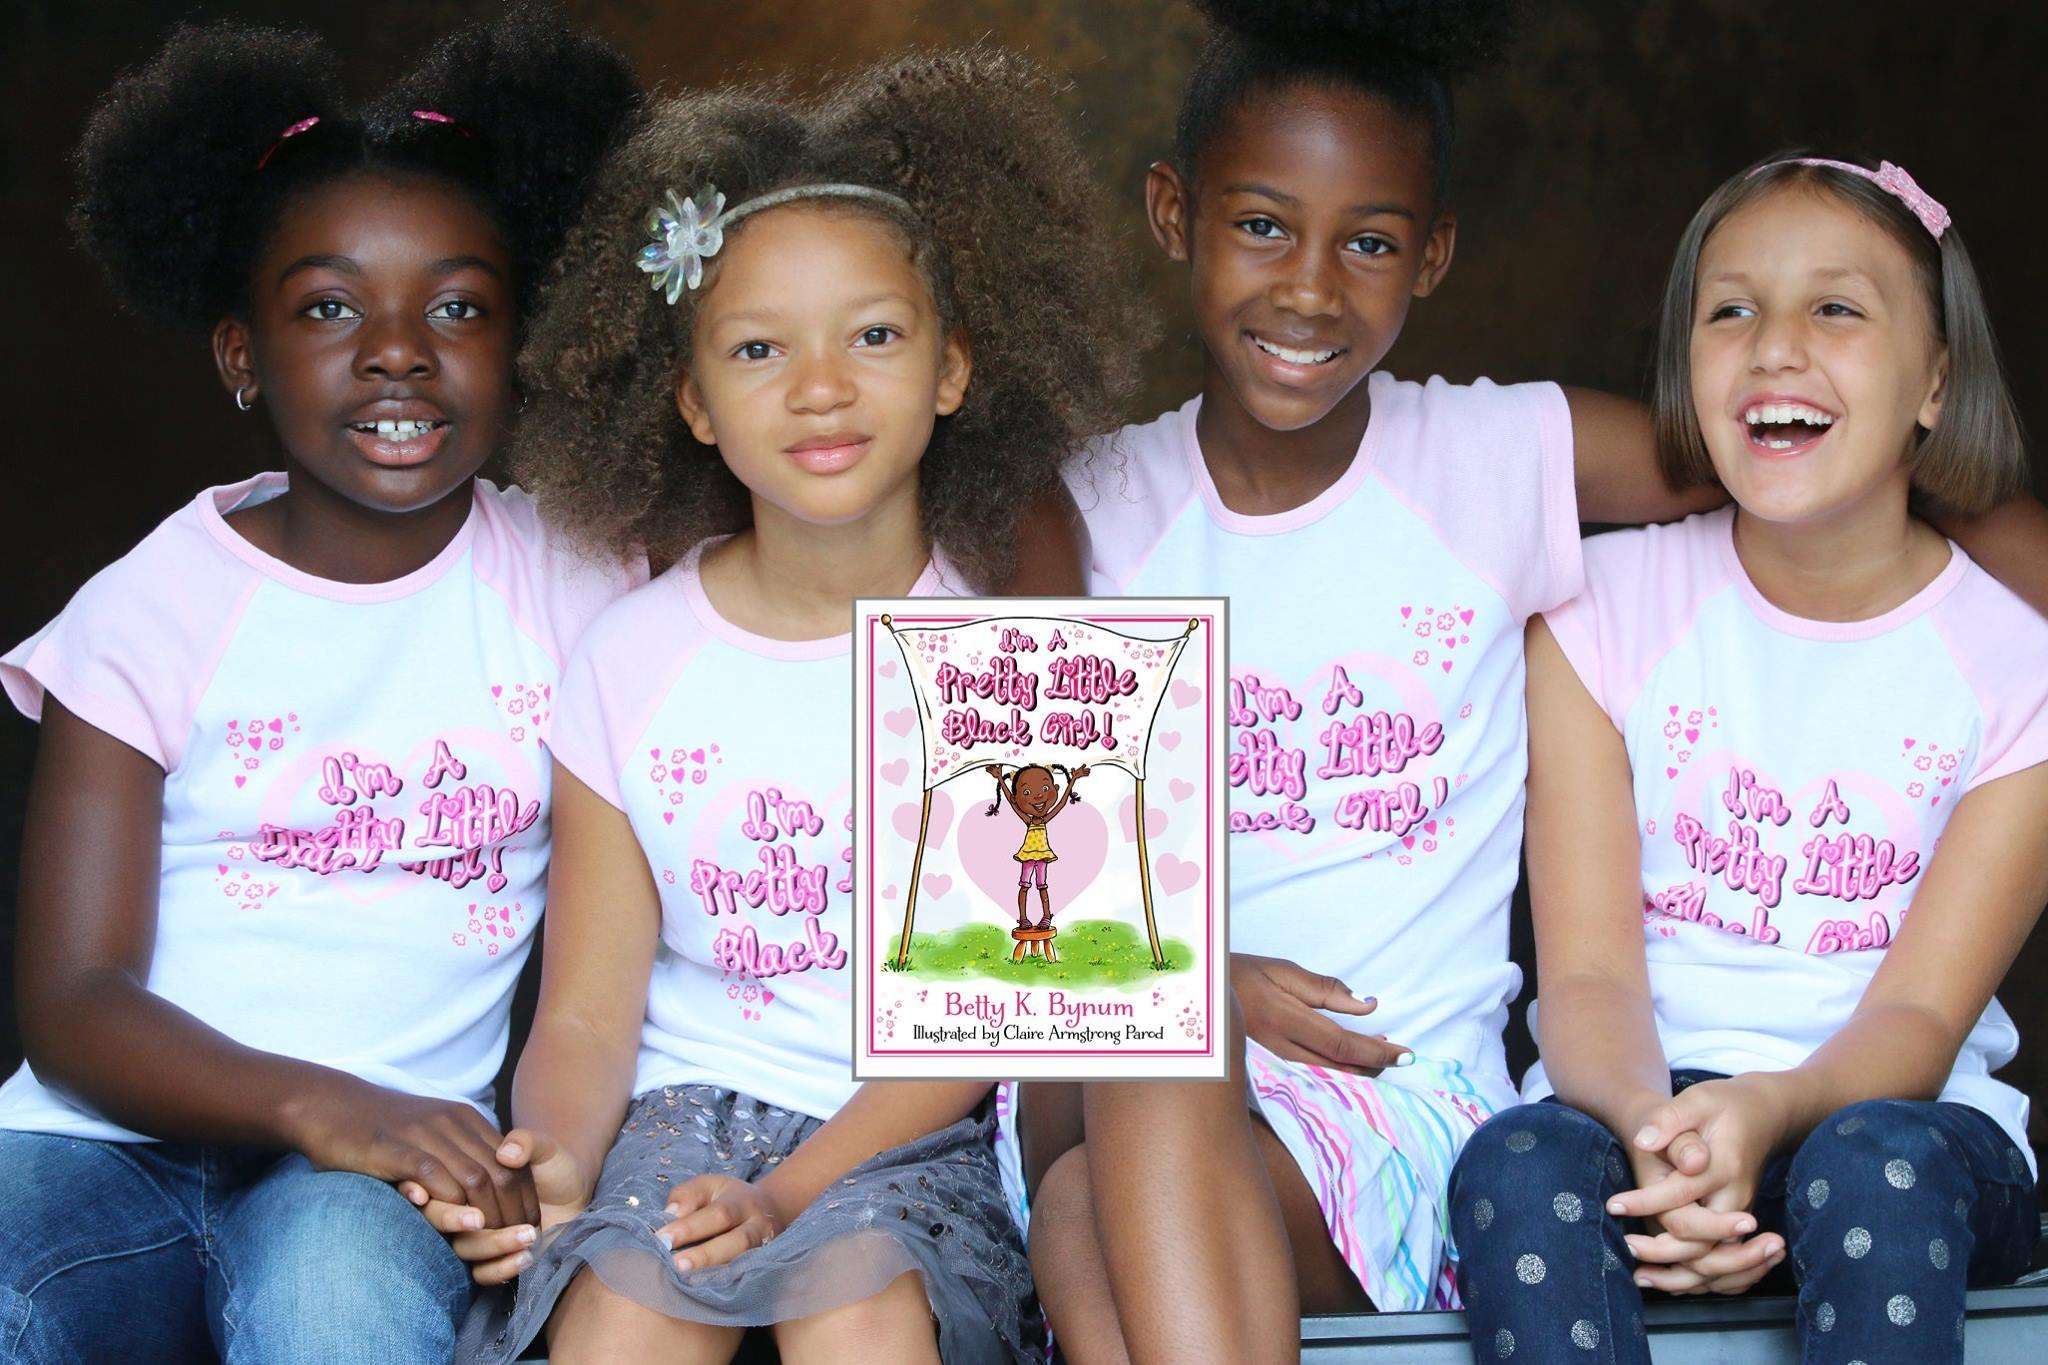 ALL GIRLS WITH BOOK IMAGE KMH WEBSITE IMAGE 10955081_916654941713219_3162246373031888549_o